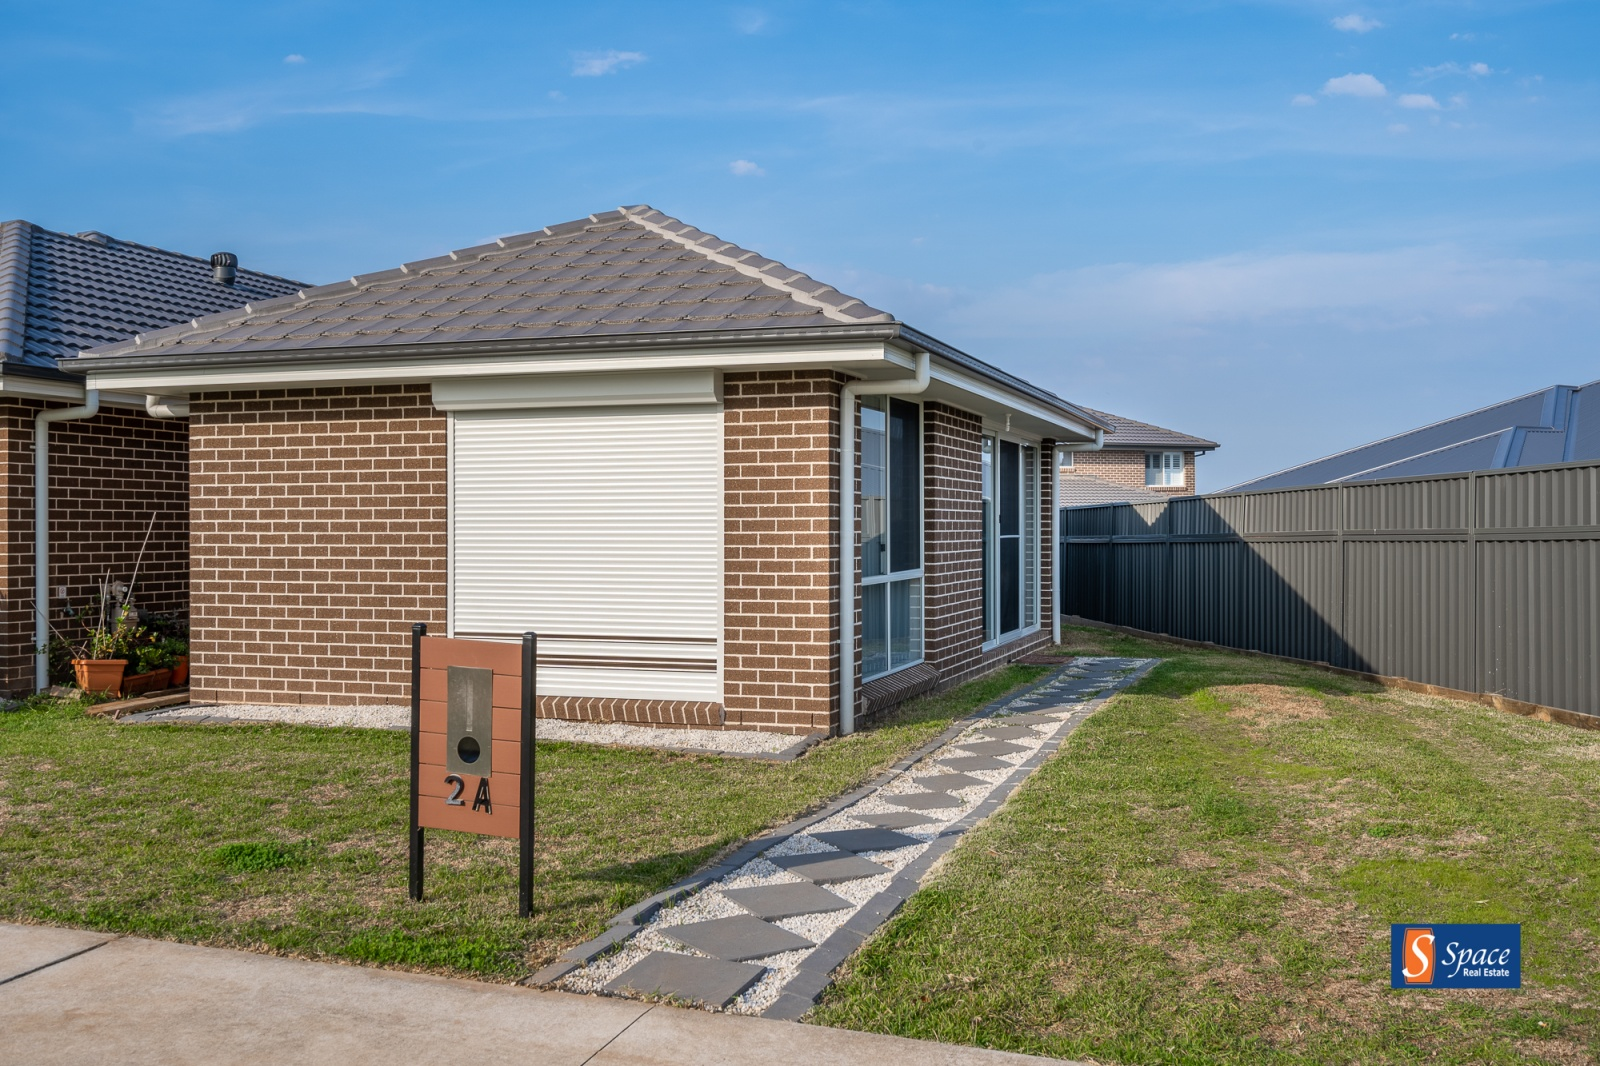 2a Evans Street,Oran Park,NSW,2 Bedrooms Bedrooms,1 BathroomBathrooms,House,Evans Street,1367